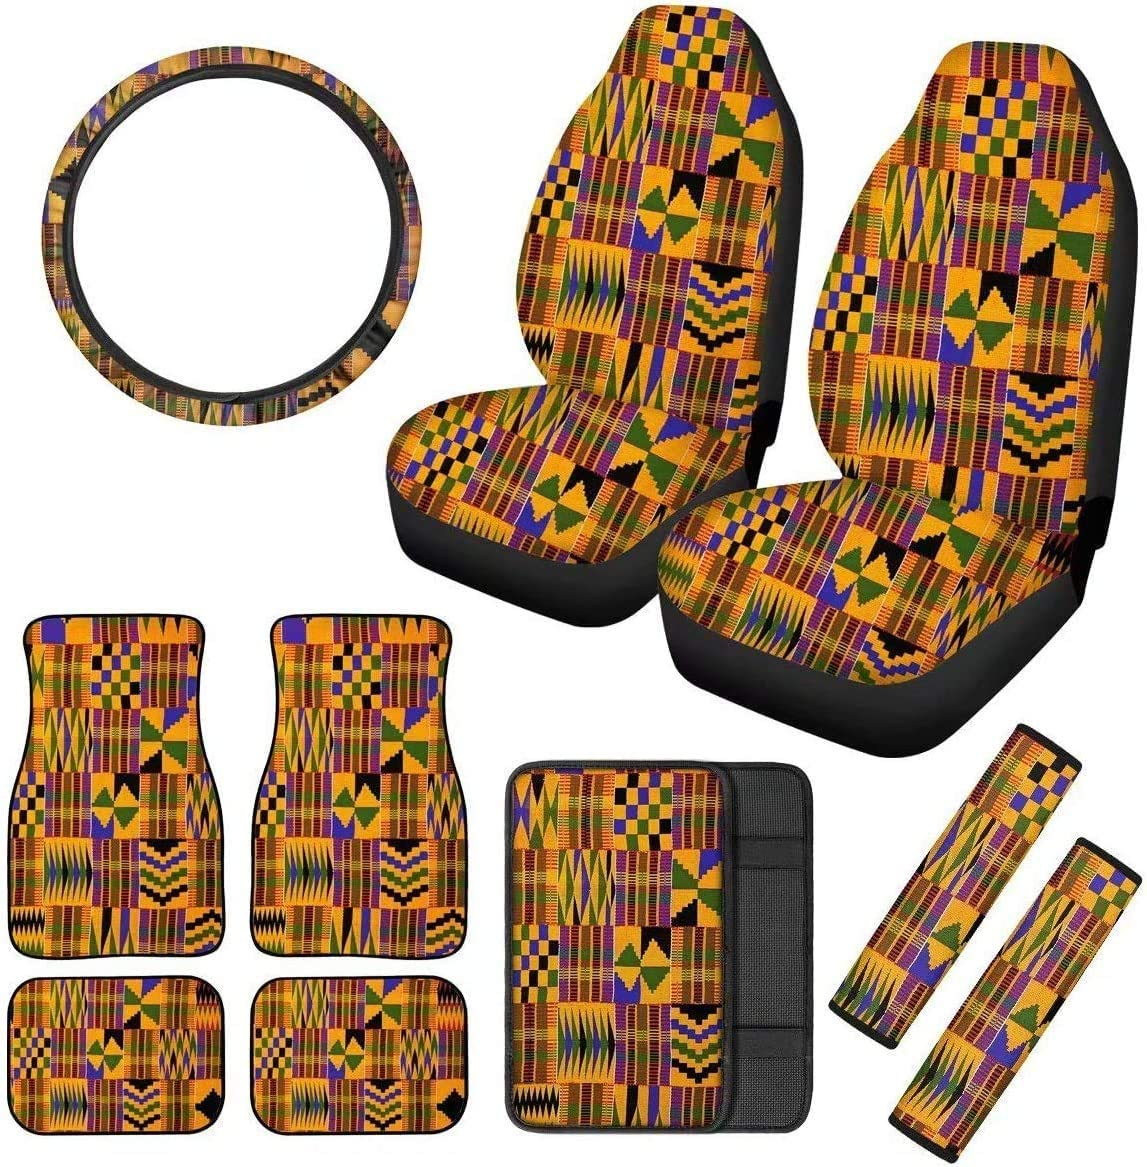 BIGCARJOB Auto Accessiores Rainbow Tie Dye Print 11pc Auto Cover,Front Seat Covers,Streering Wheel Cover,Center Console Pad Seat Belt Shoulder Cover with Car Mat fit Most Truck Sedan